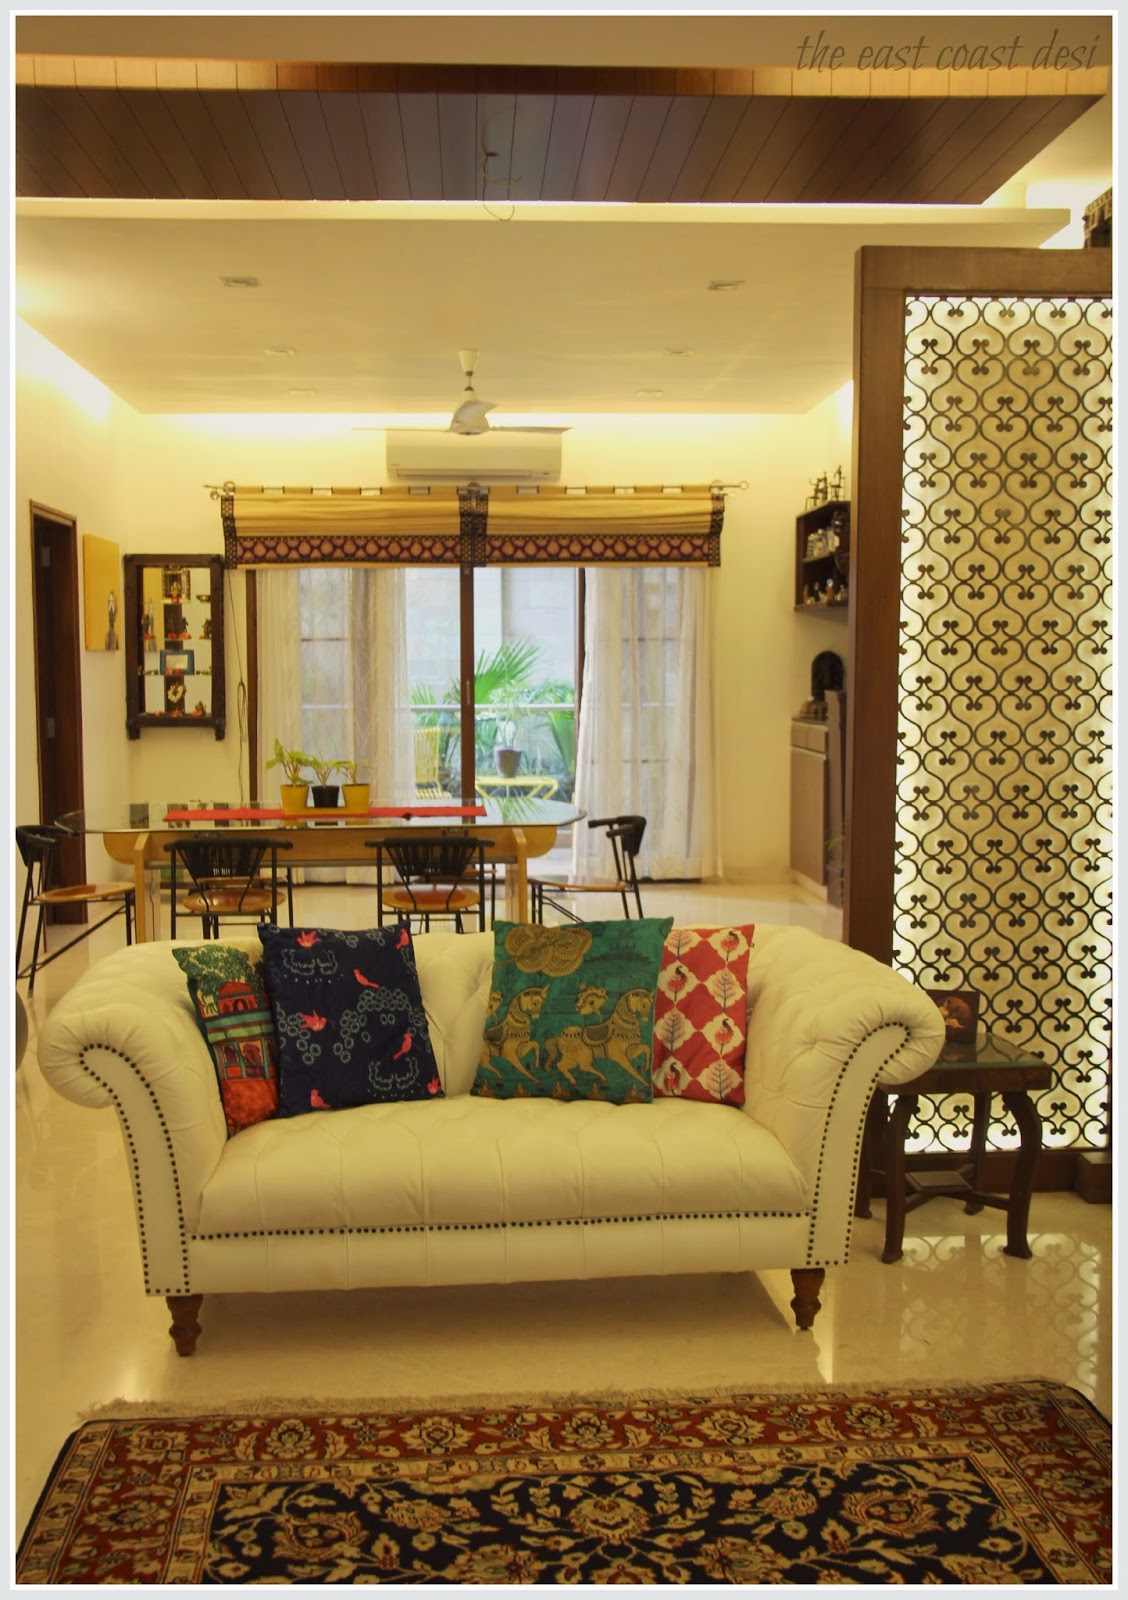 The east coast desi masterful mixing home tour - Indian house interior designs ...